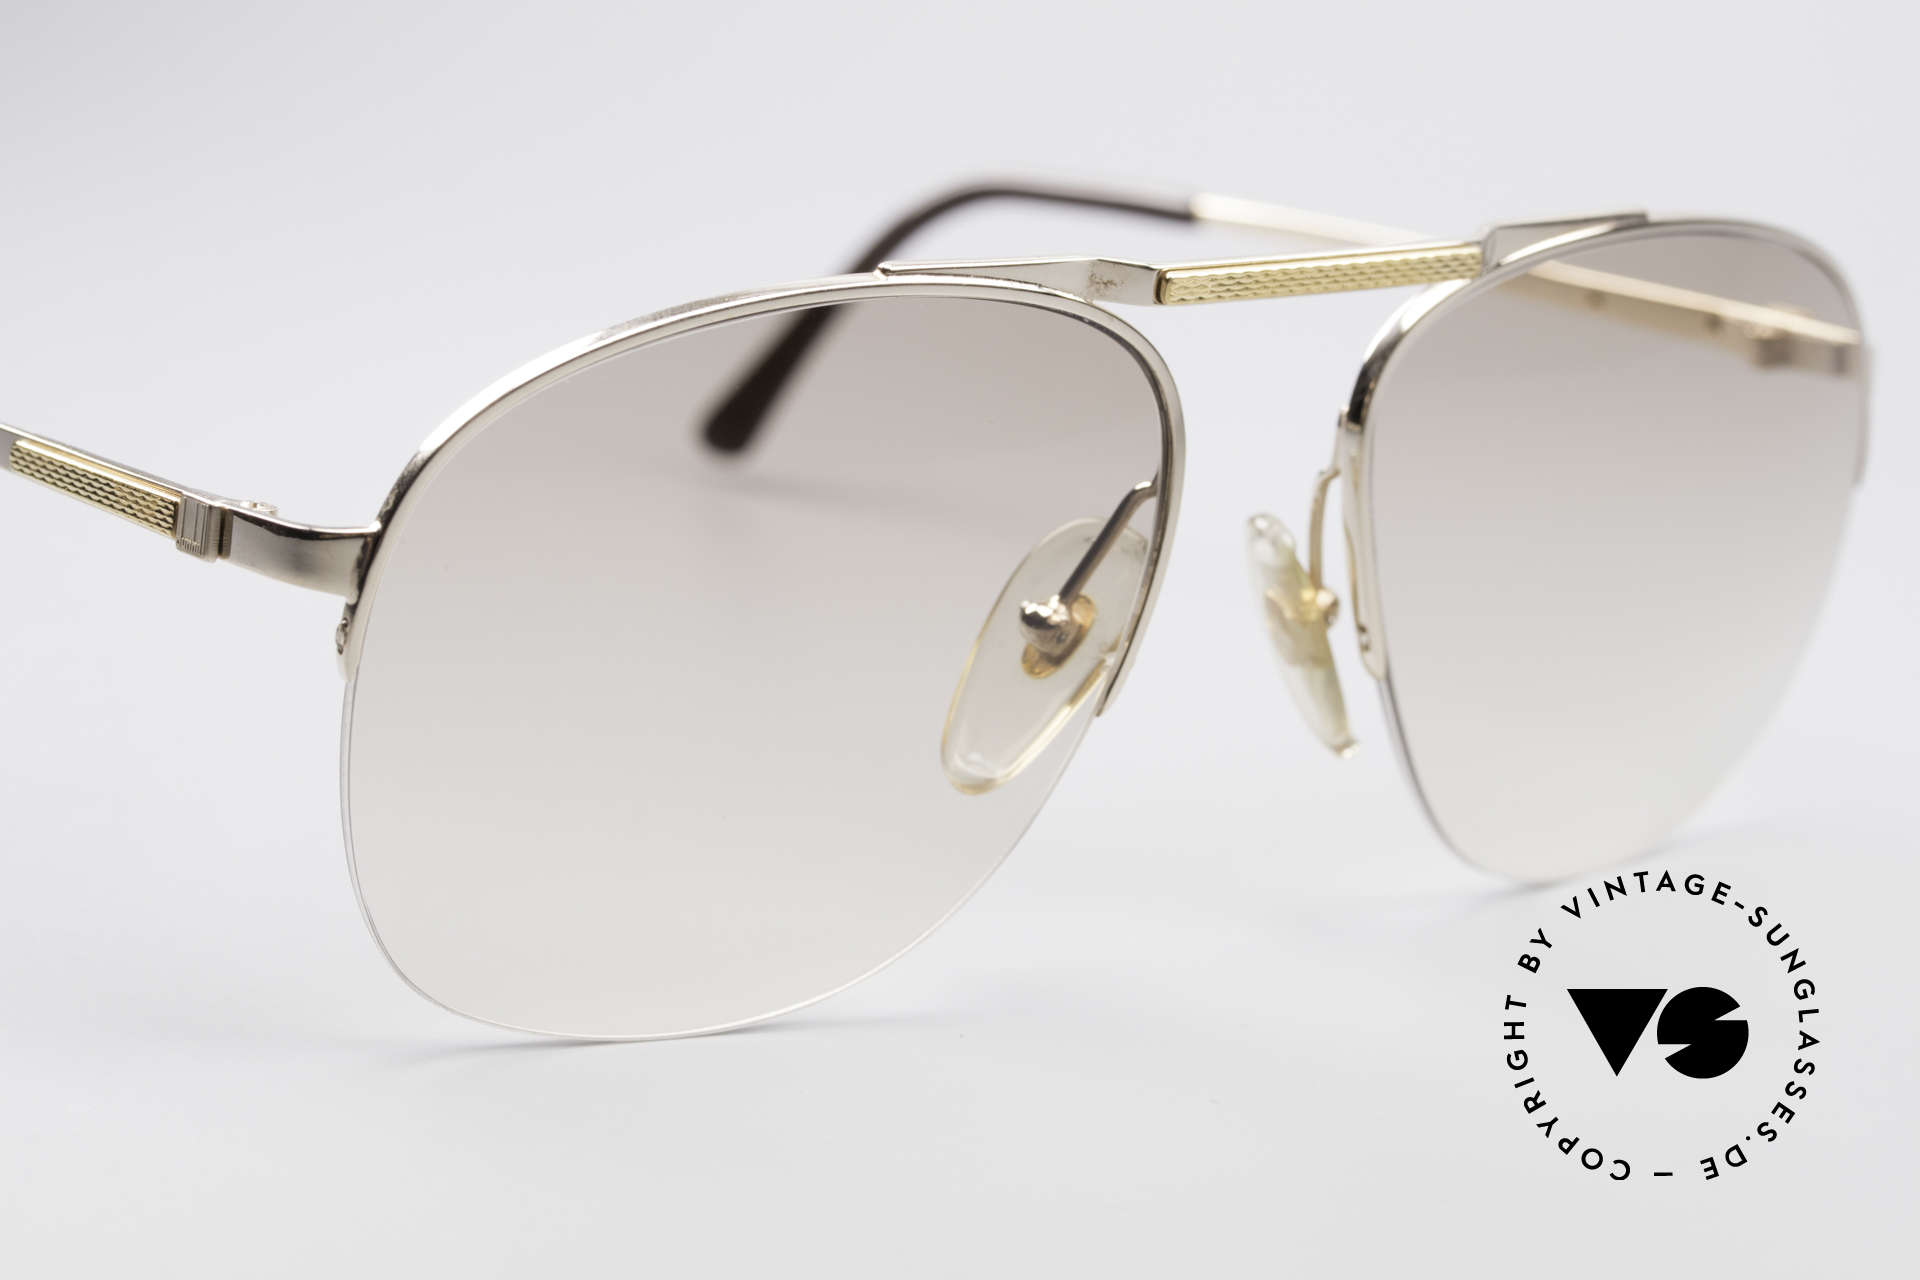 Dunhill 6022 Rare 80's Gentlemen's Frame, new old stock (like all our vintage Dunhill sunglases), Made for Men